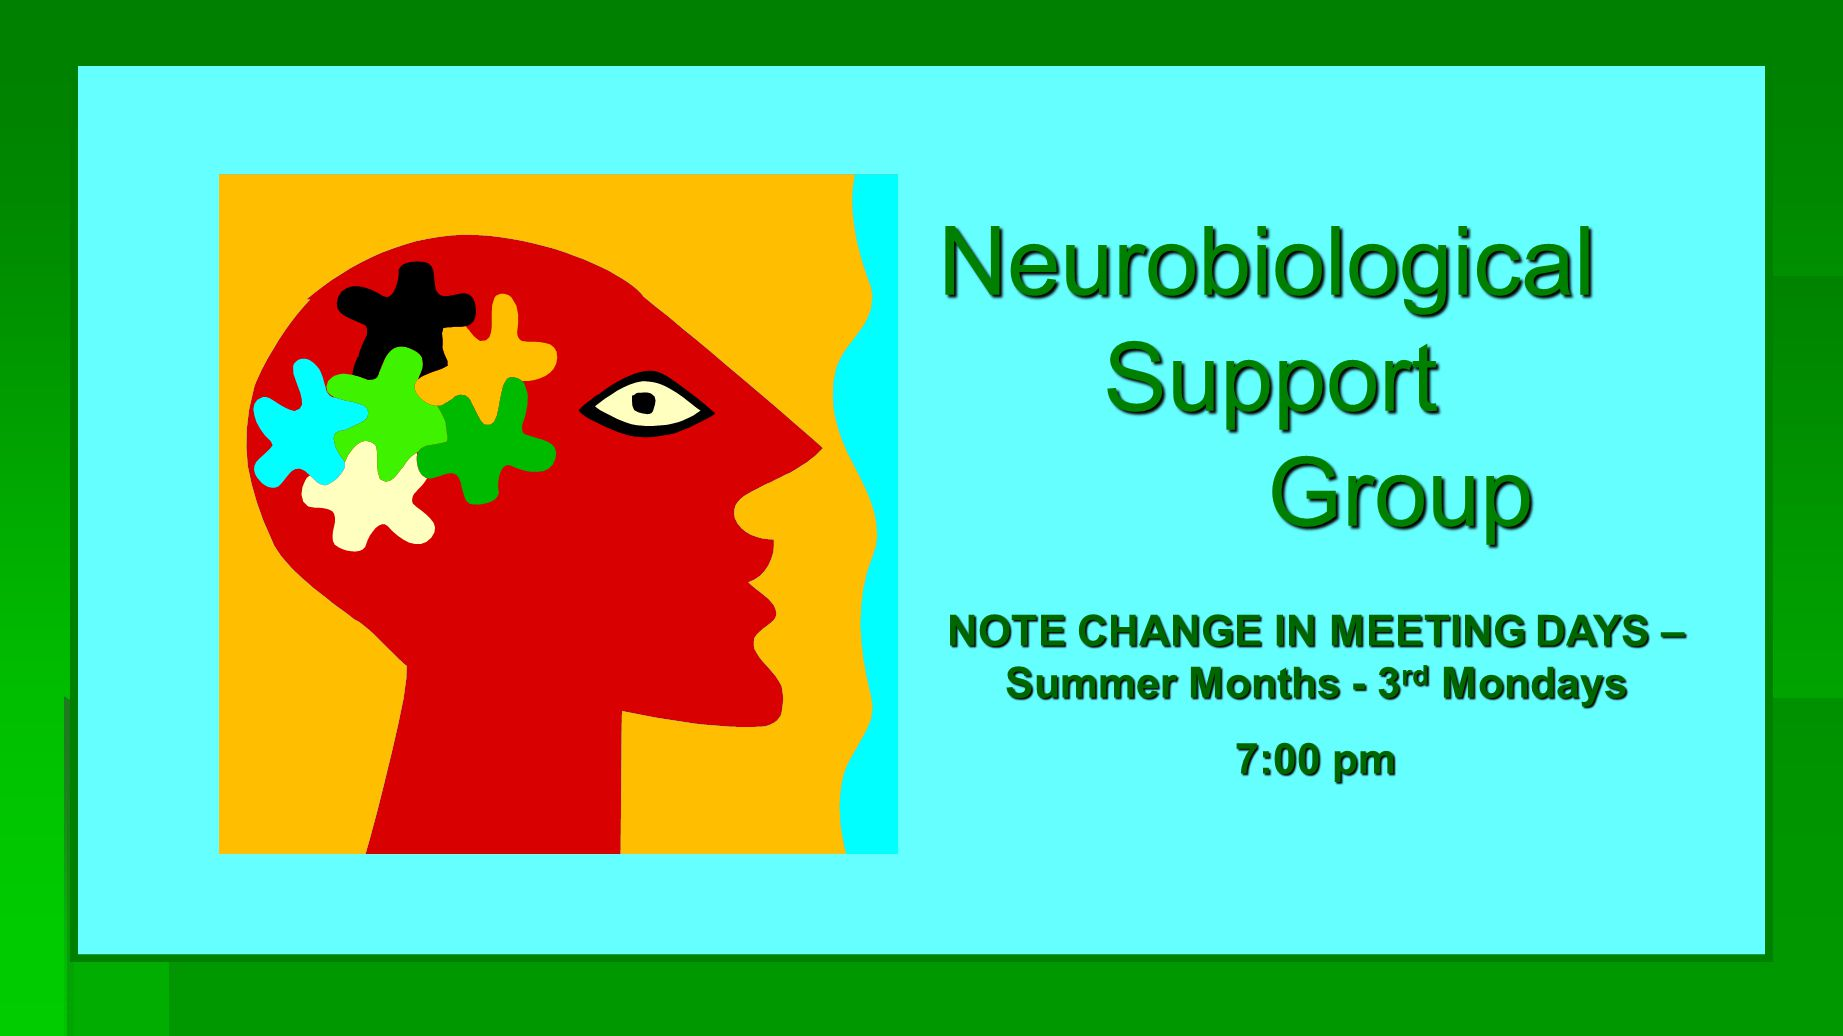 Neurobiological Support Group NOTE CHANGE IN MEETING DAYS – Summer Months - 3 rd Mondays 7:00 pm